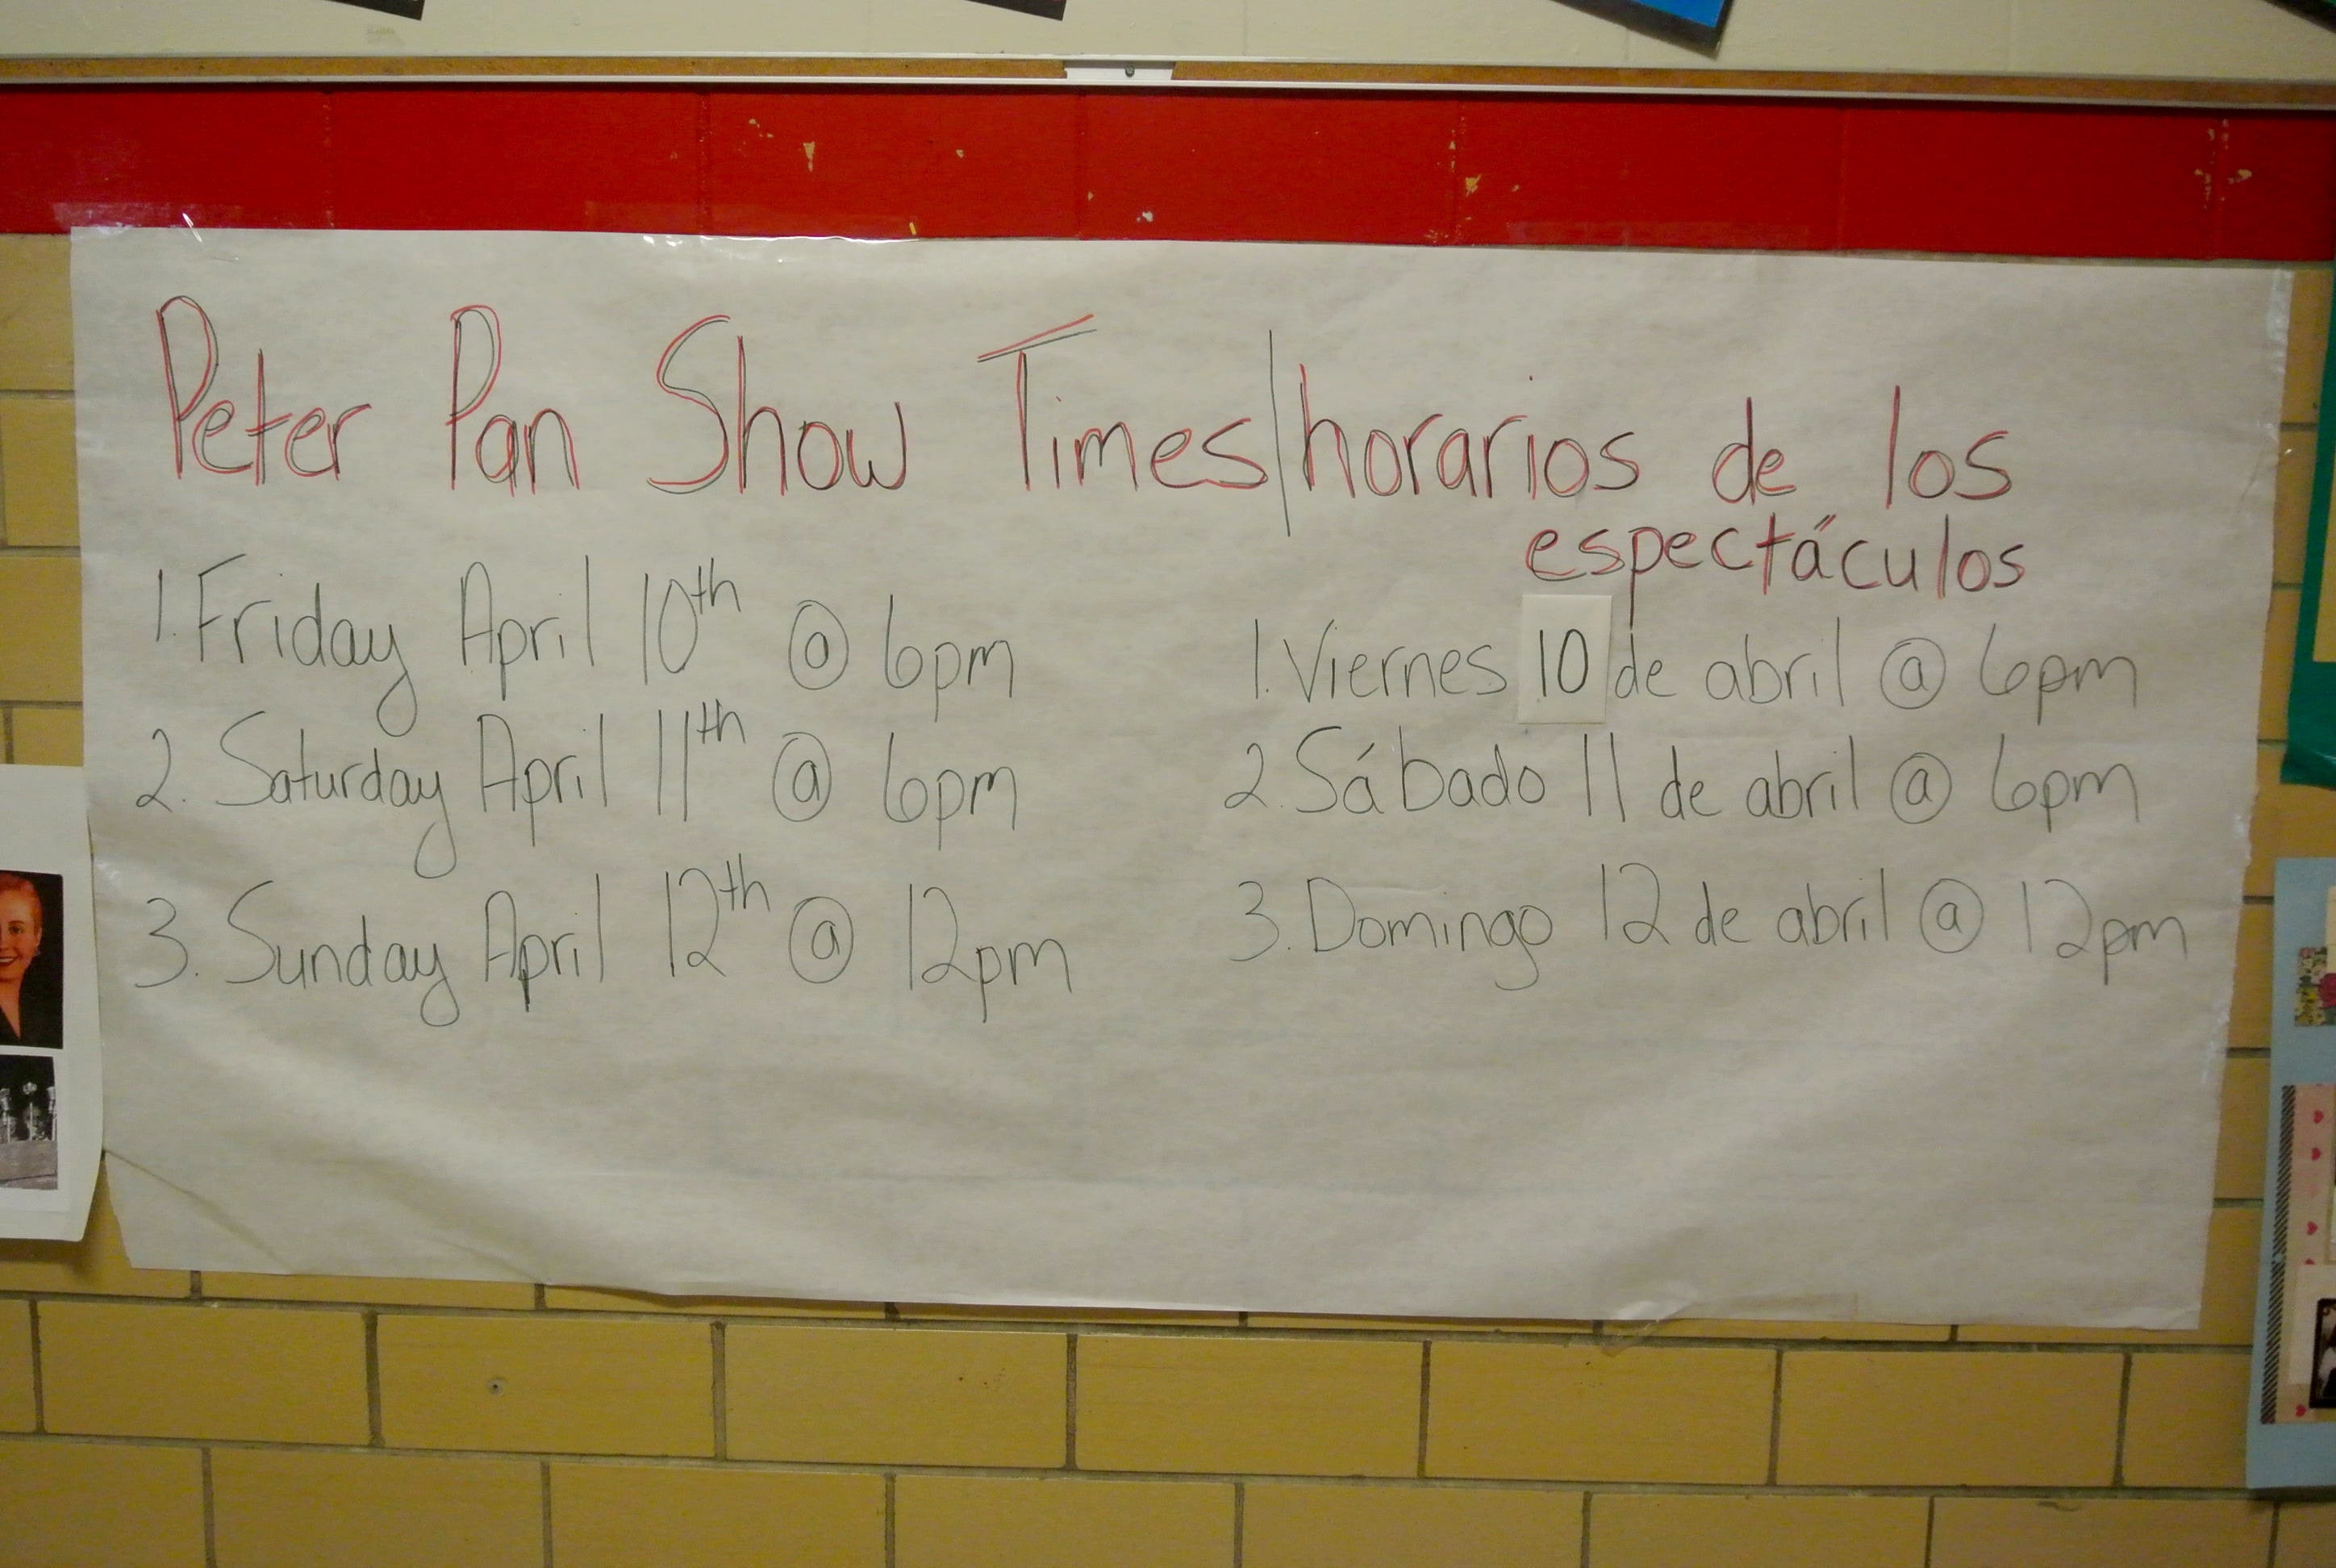 The Peter Pan show times.